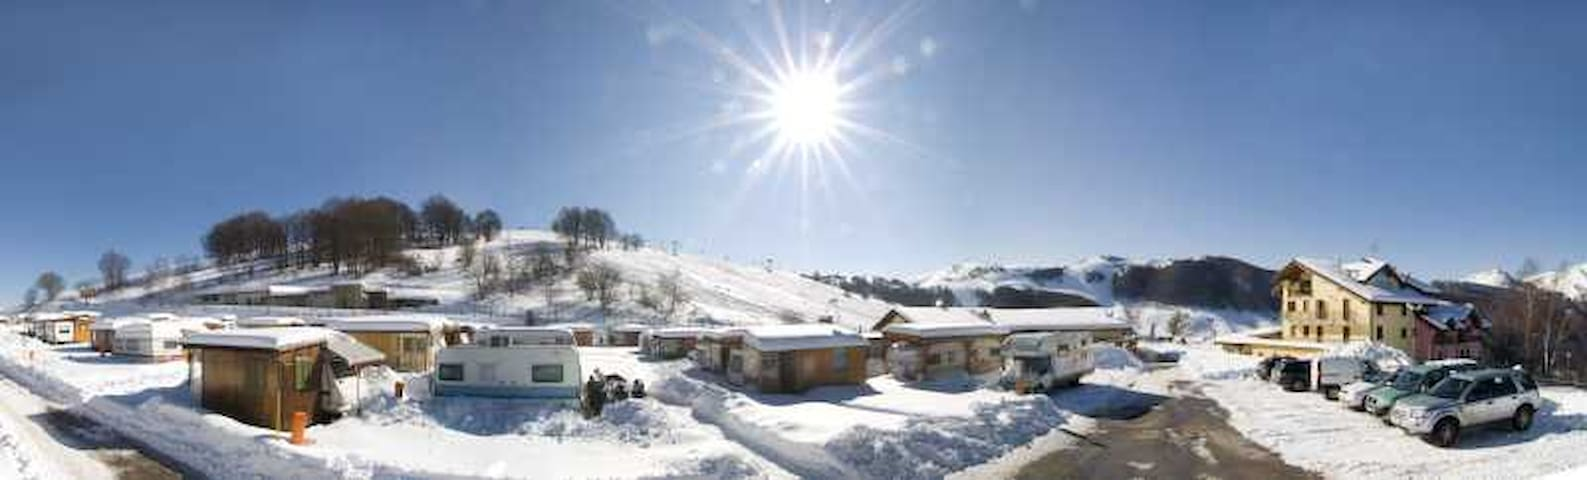 Piazzola in camping per camper e roulotte - Brentonico - Other